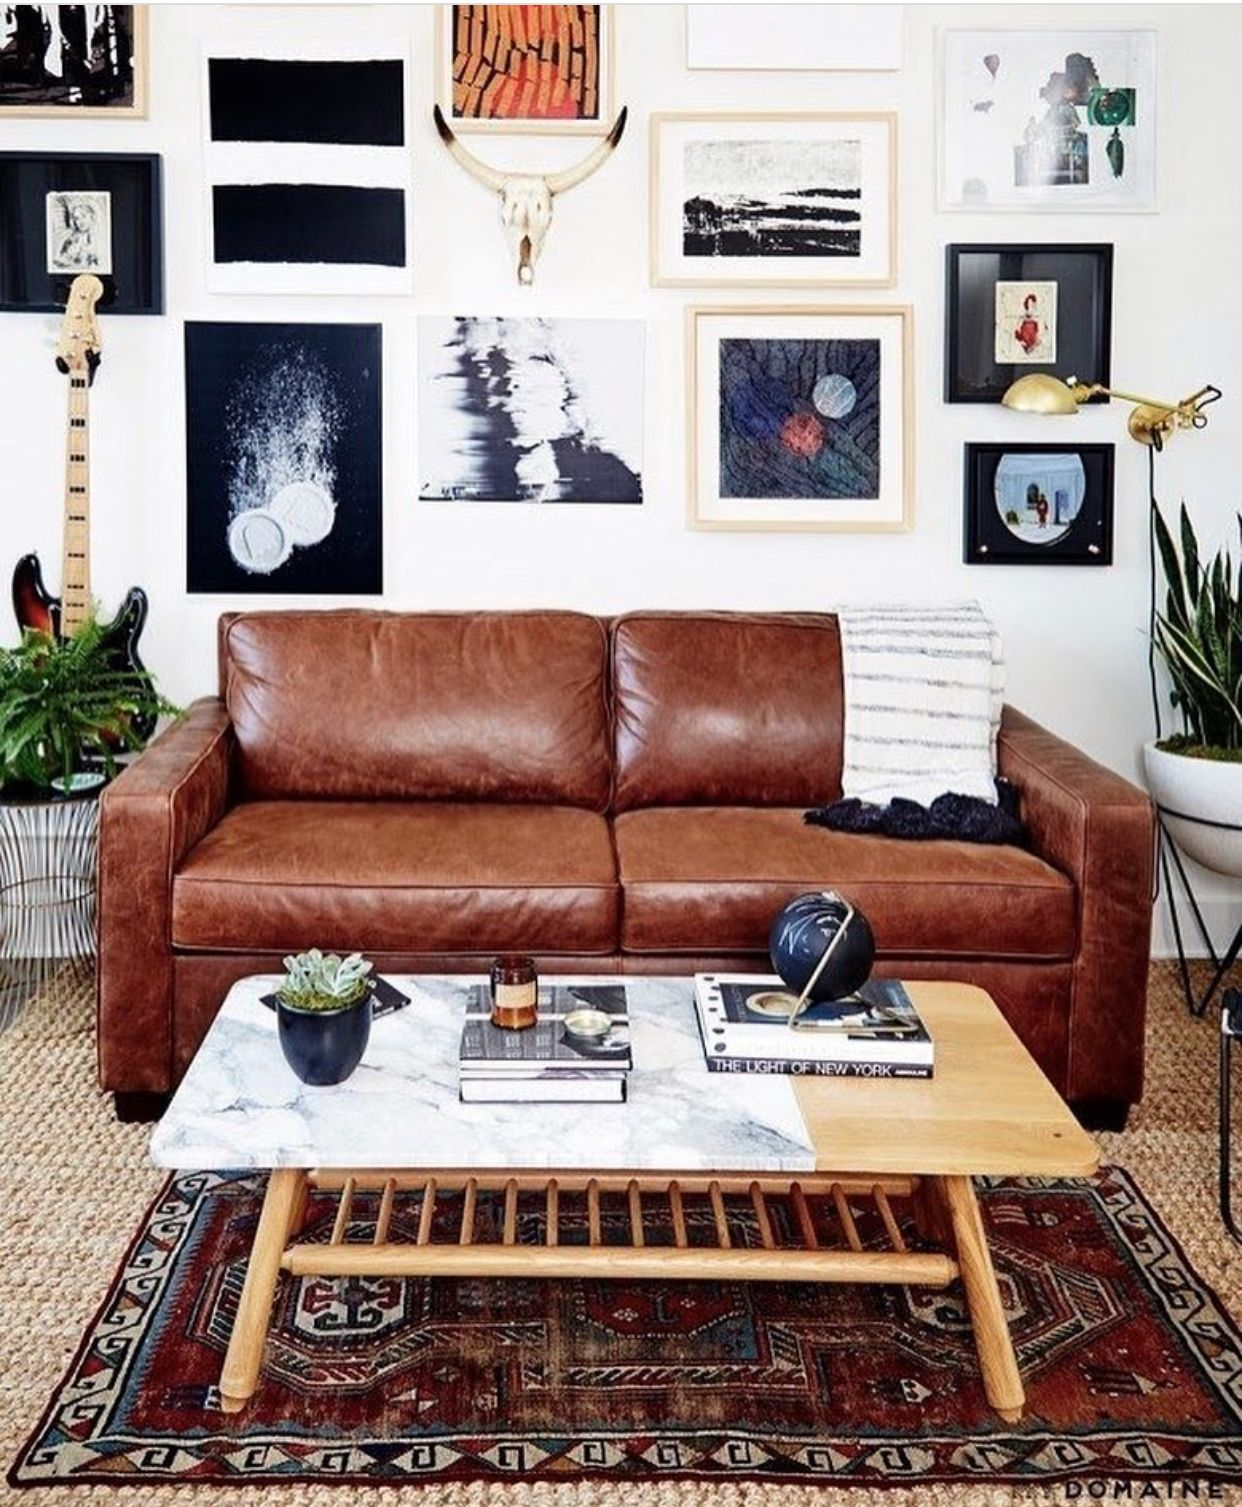 73 Eclectic Living Room Decor Ideas: Pin By Kathryn Hall On Home